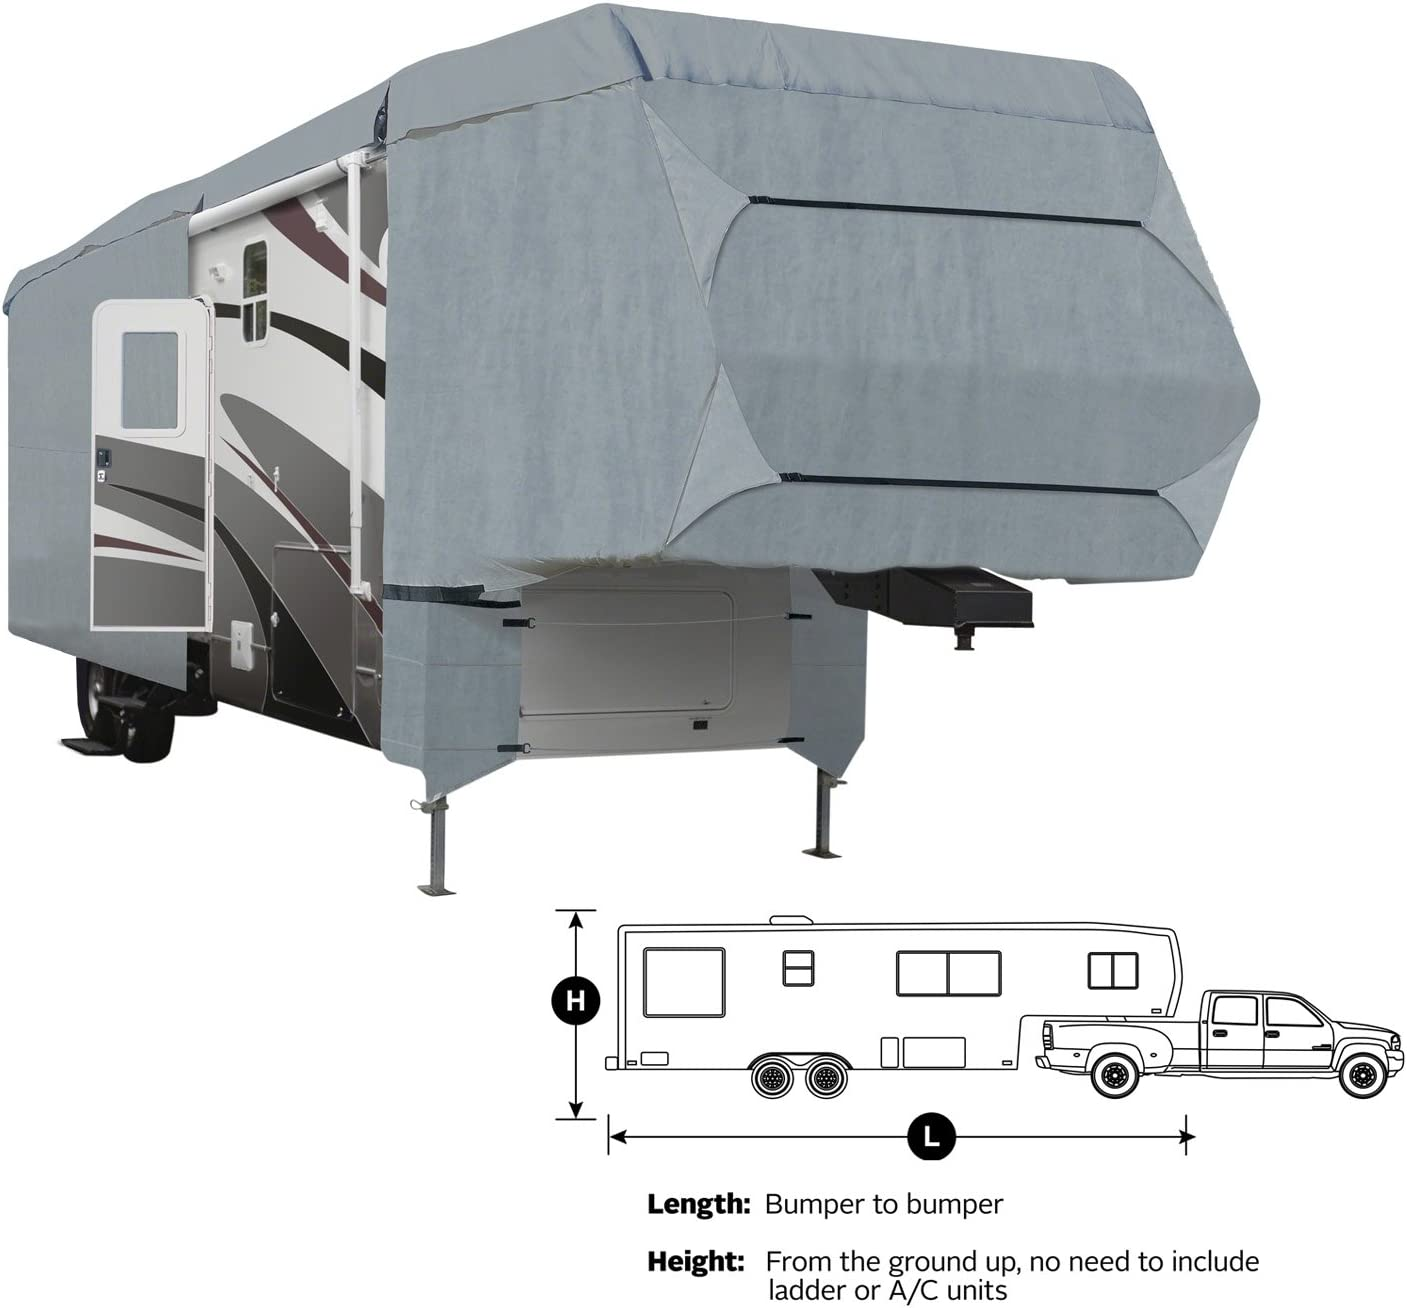 Ripstop Waterproof with a Pair of Assist Steel Pole 26-29 XGEAR Easy Setup 5th Wheel RV Cover Thick 3-Ply Top Panel